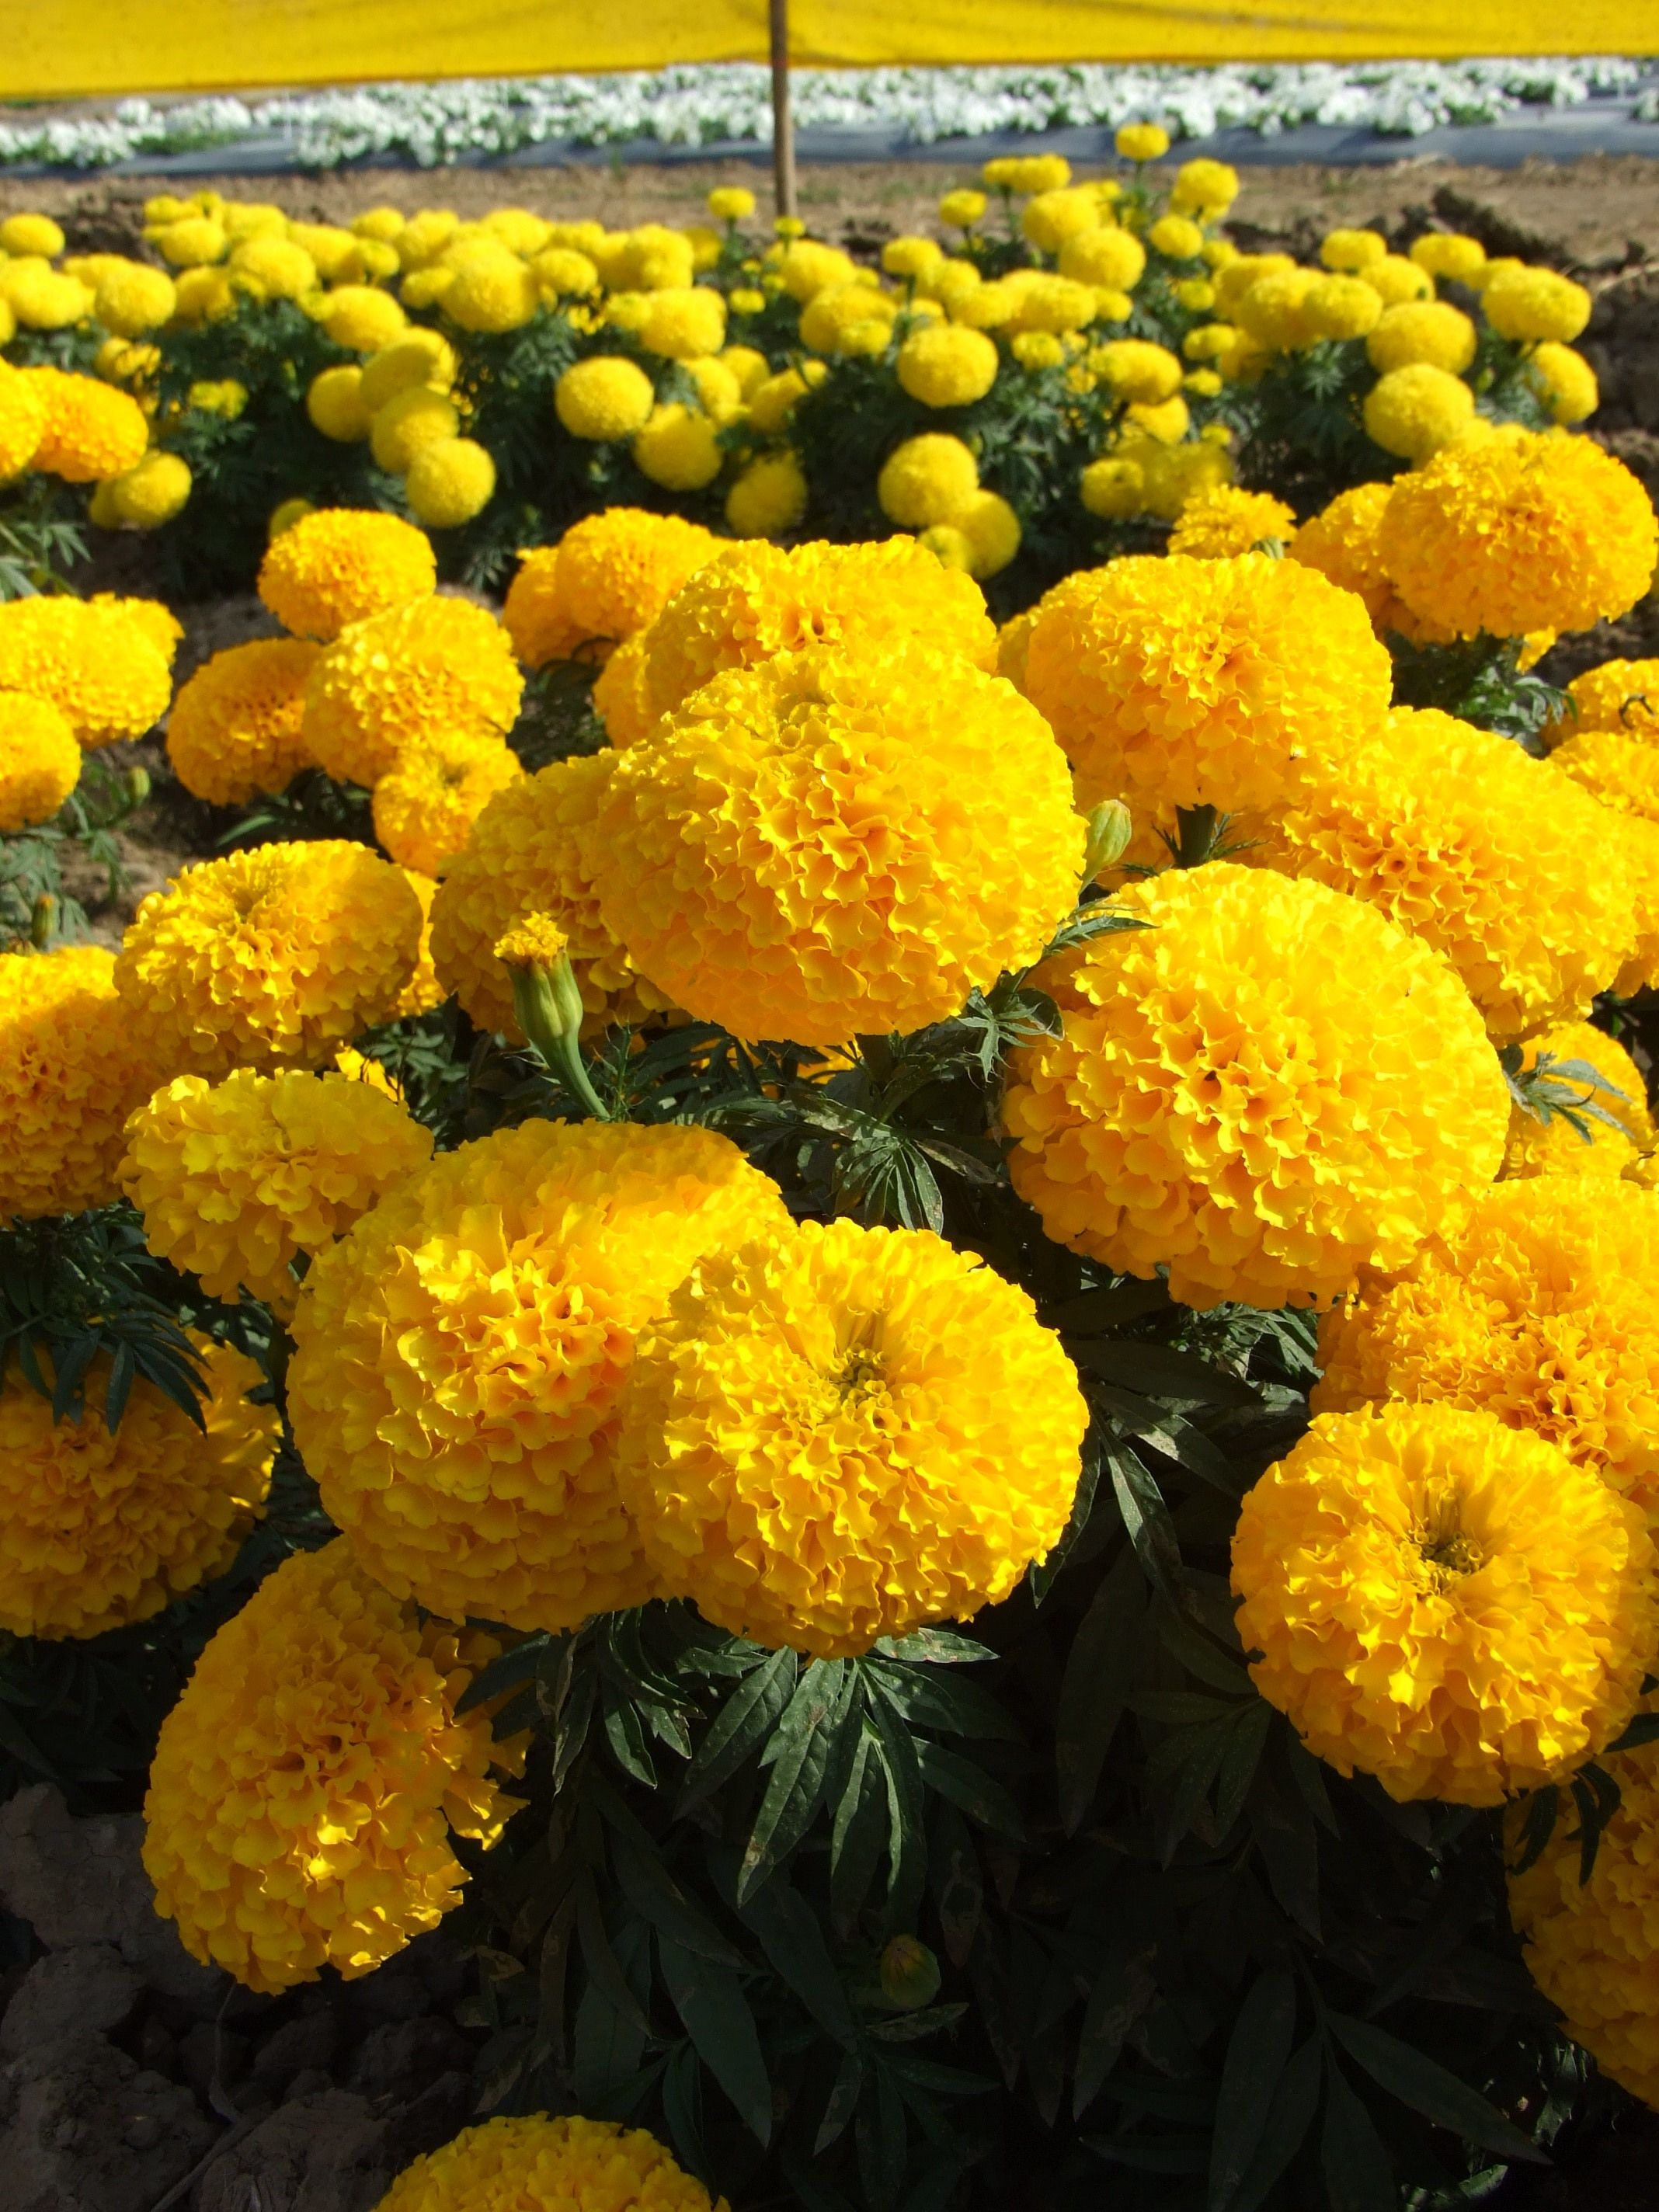 India S Best Quality Marigold Seeds From Kimcoseeds Tested On Variety Of Conditions To Get Best Yield Marigold Flower Yellow Flowers Flower Garden